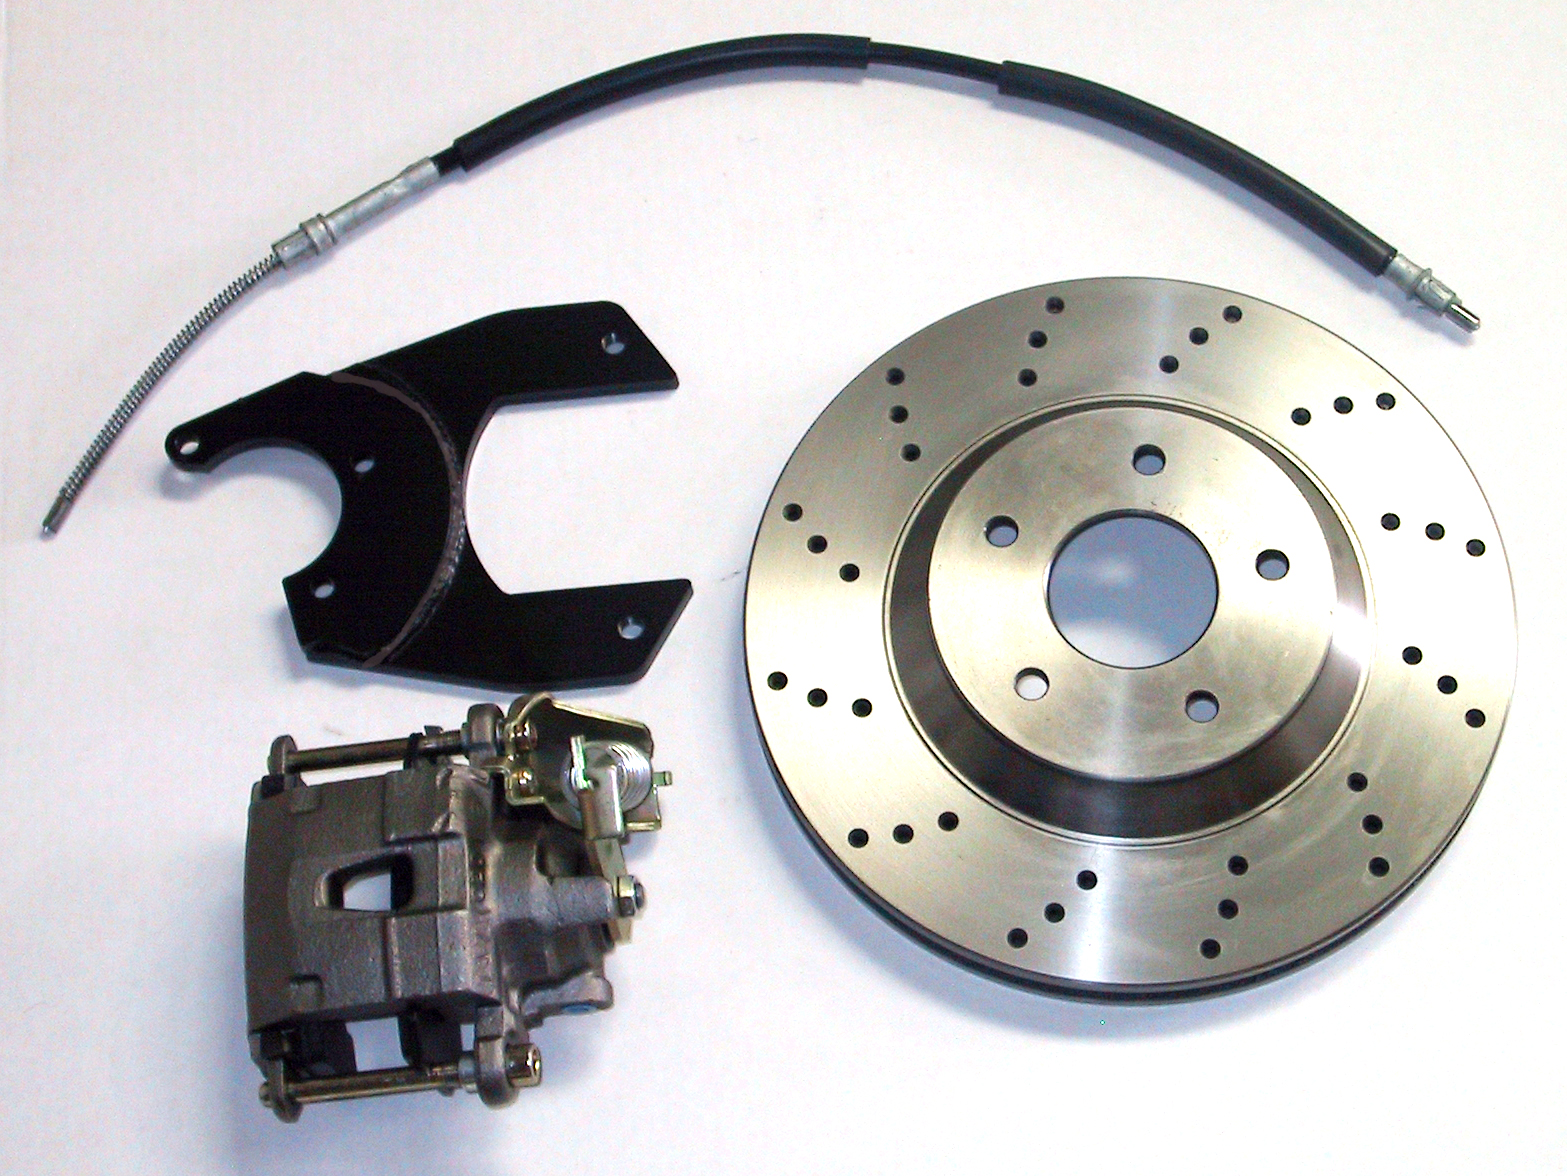 """MCG64099 13"""" Big Brake Rear Kit for 10 or 12 bolt GM rear end 5 x 4.75 Must use 17""""+ rims **Cross Drilled Rotors**"""